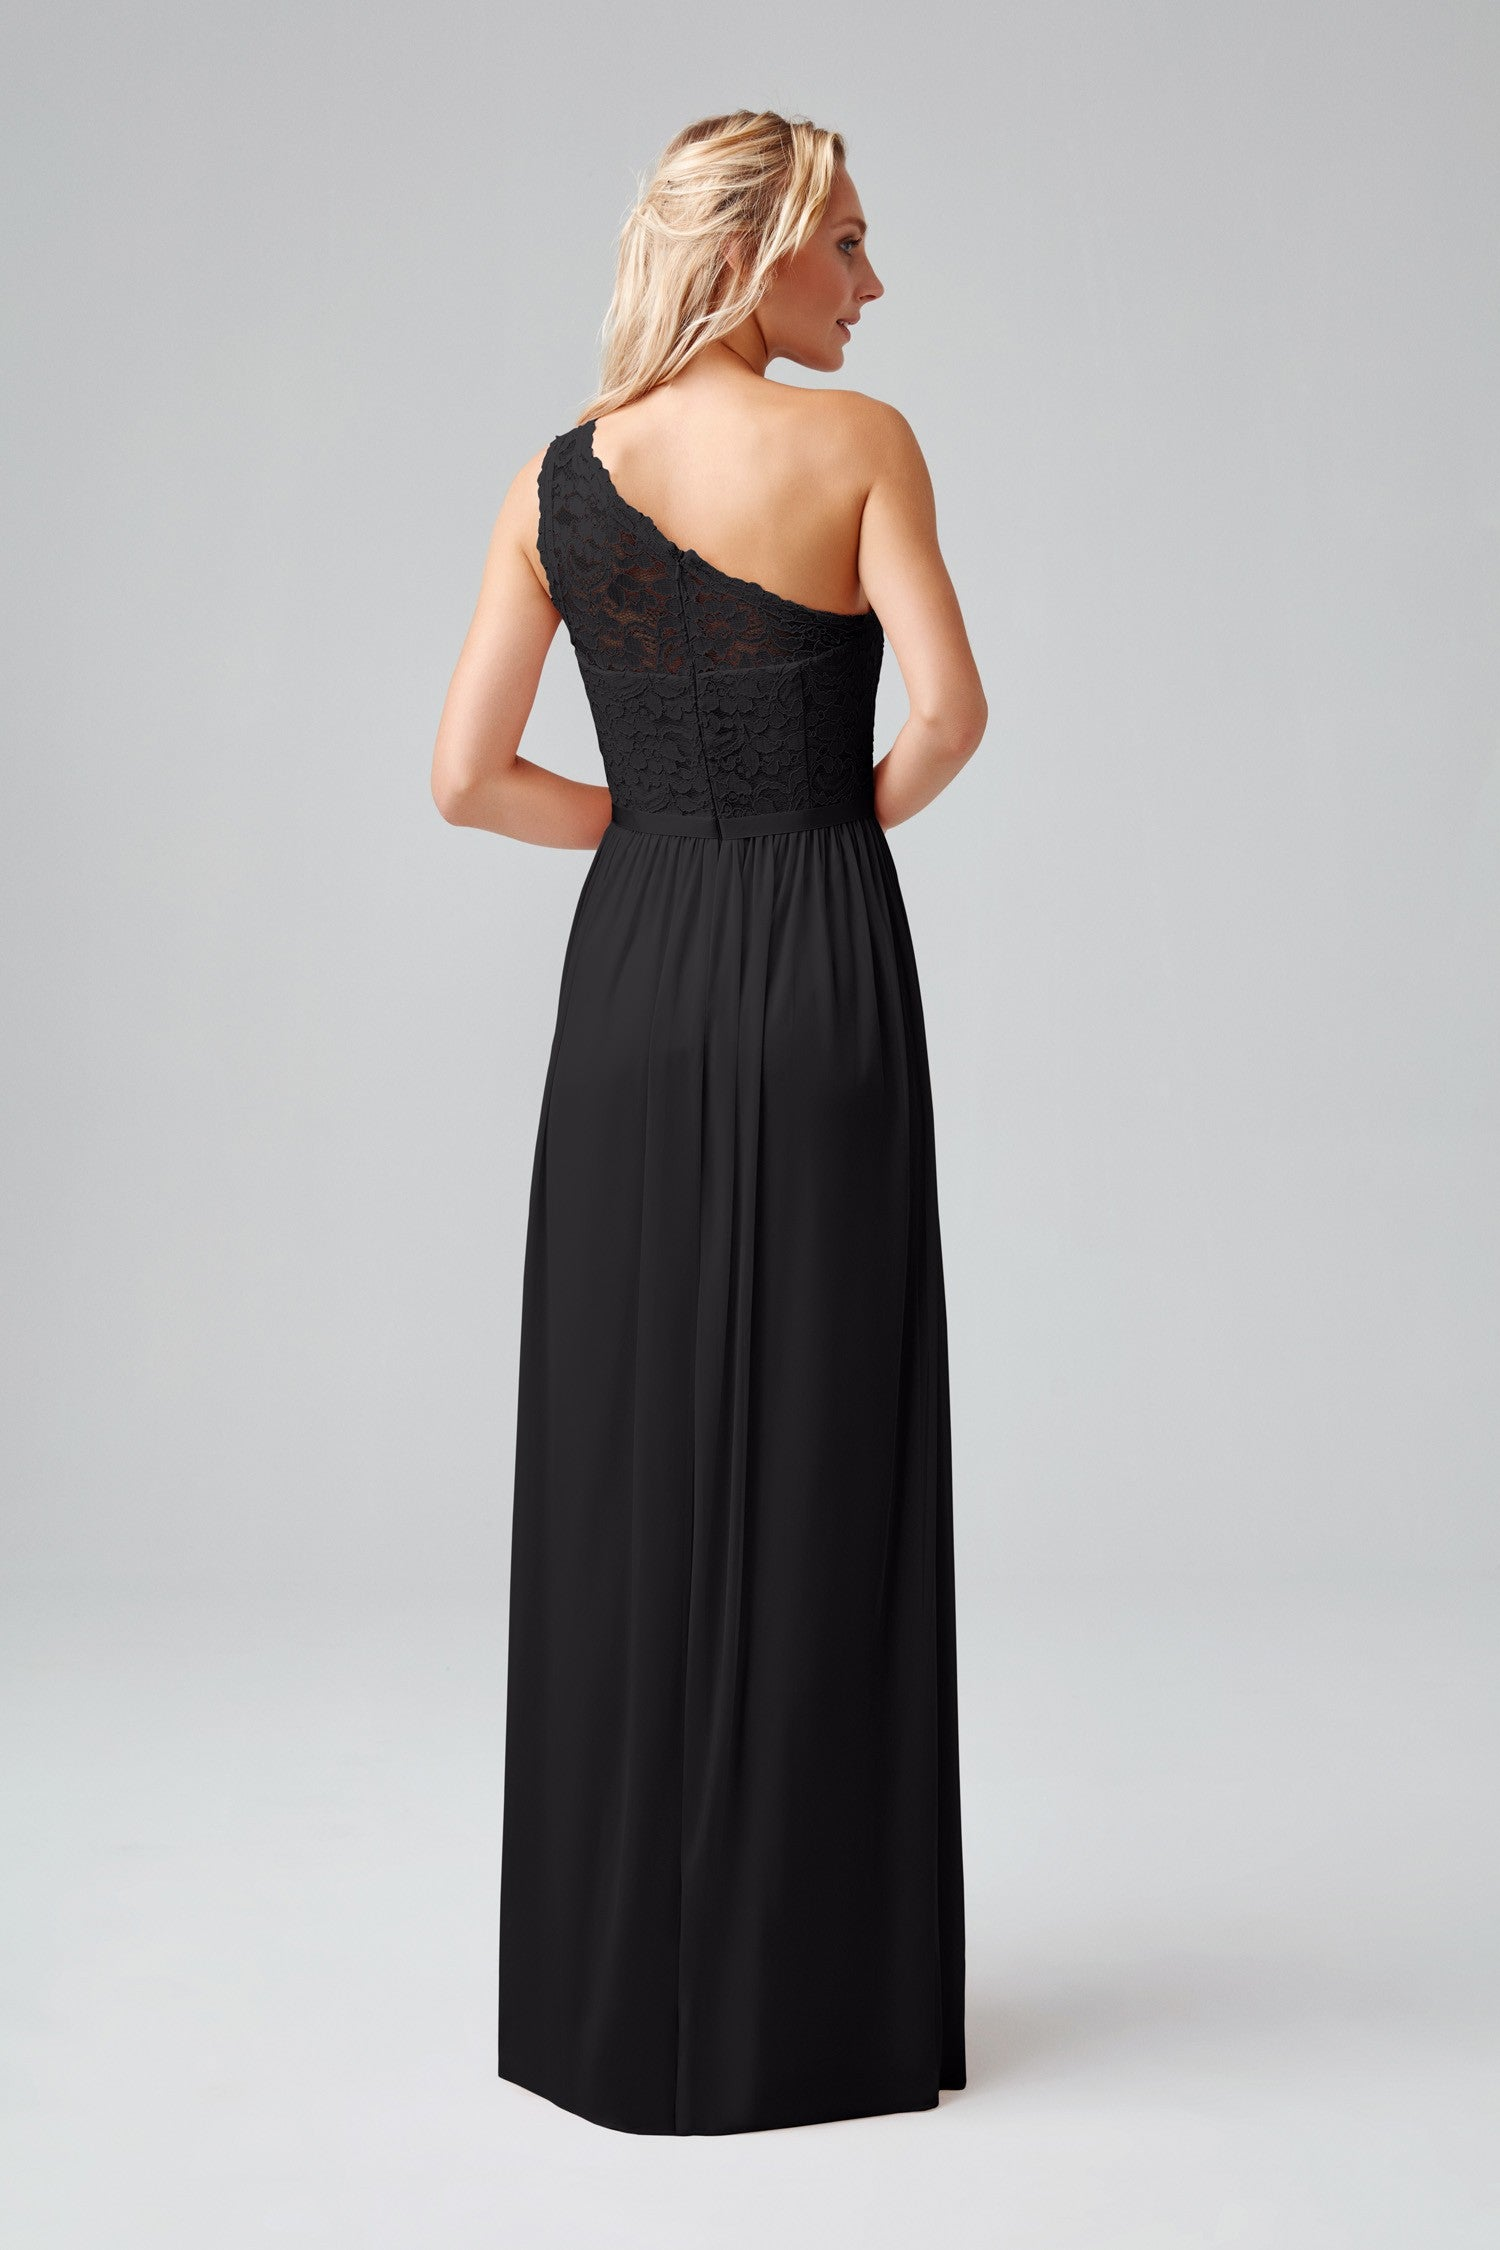 Long One Shoulder Lace Bridesmaid Dress-F17063